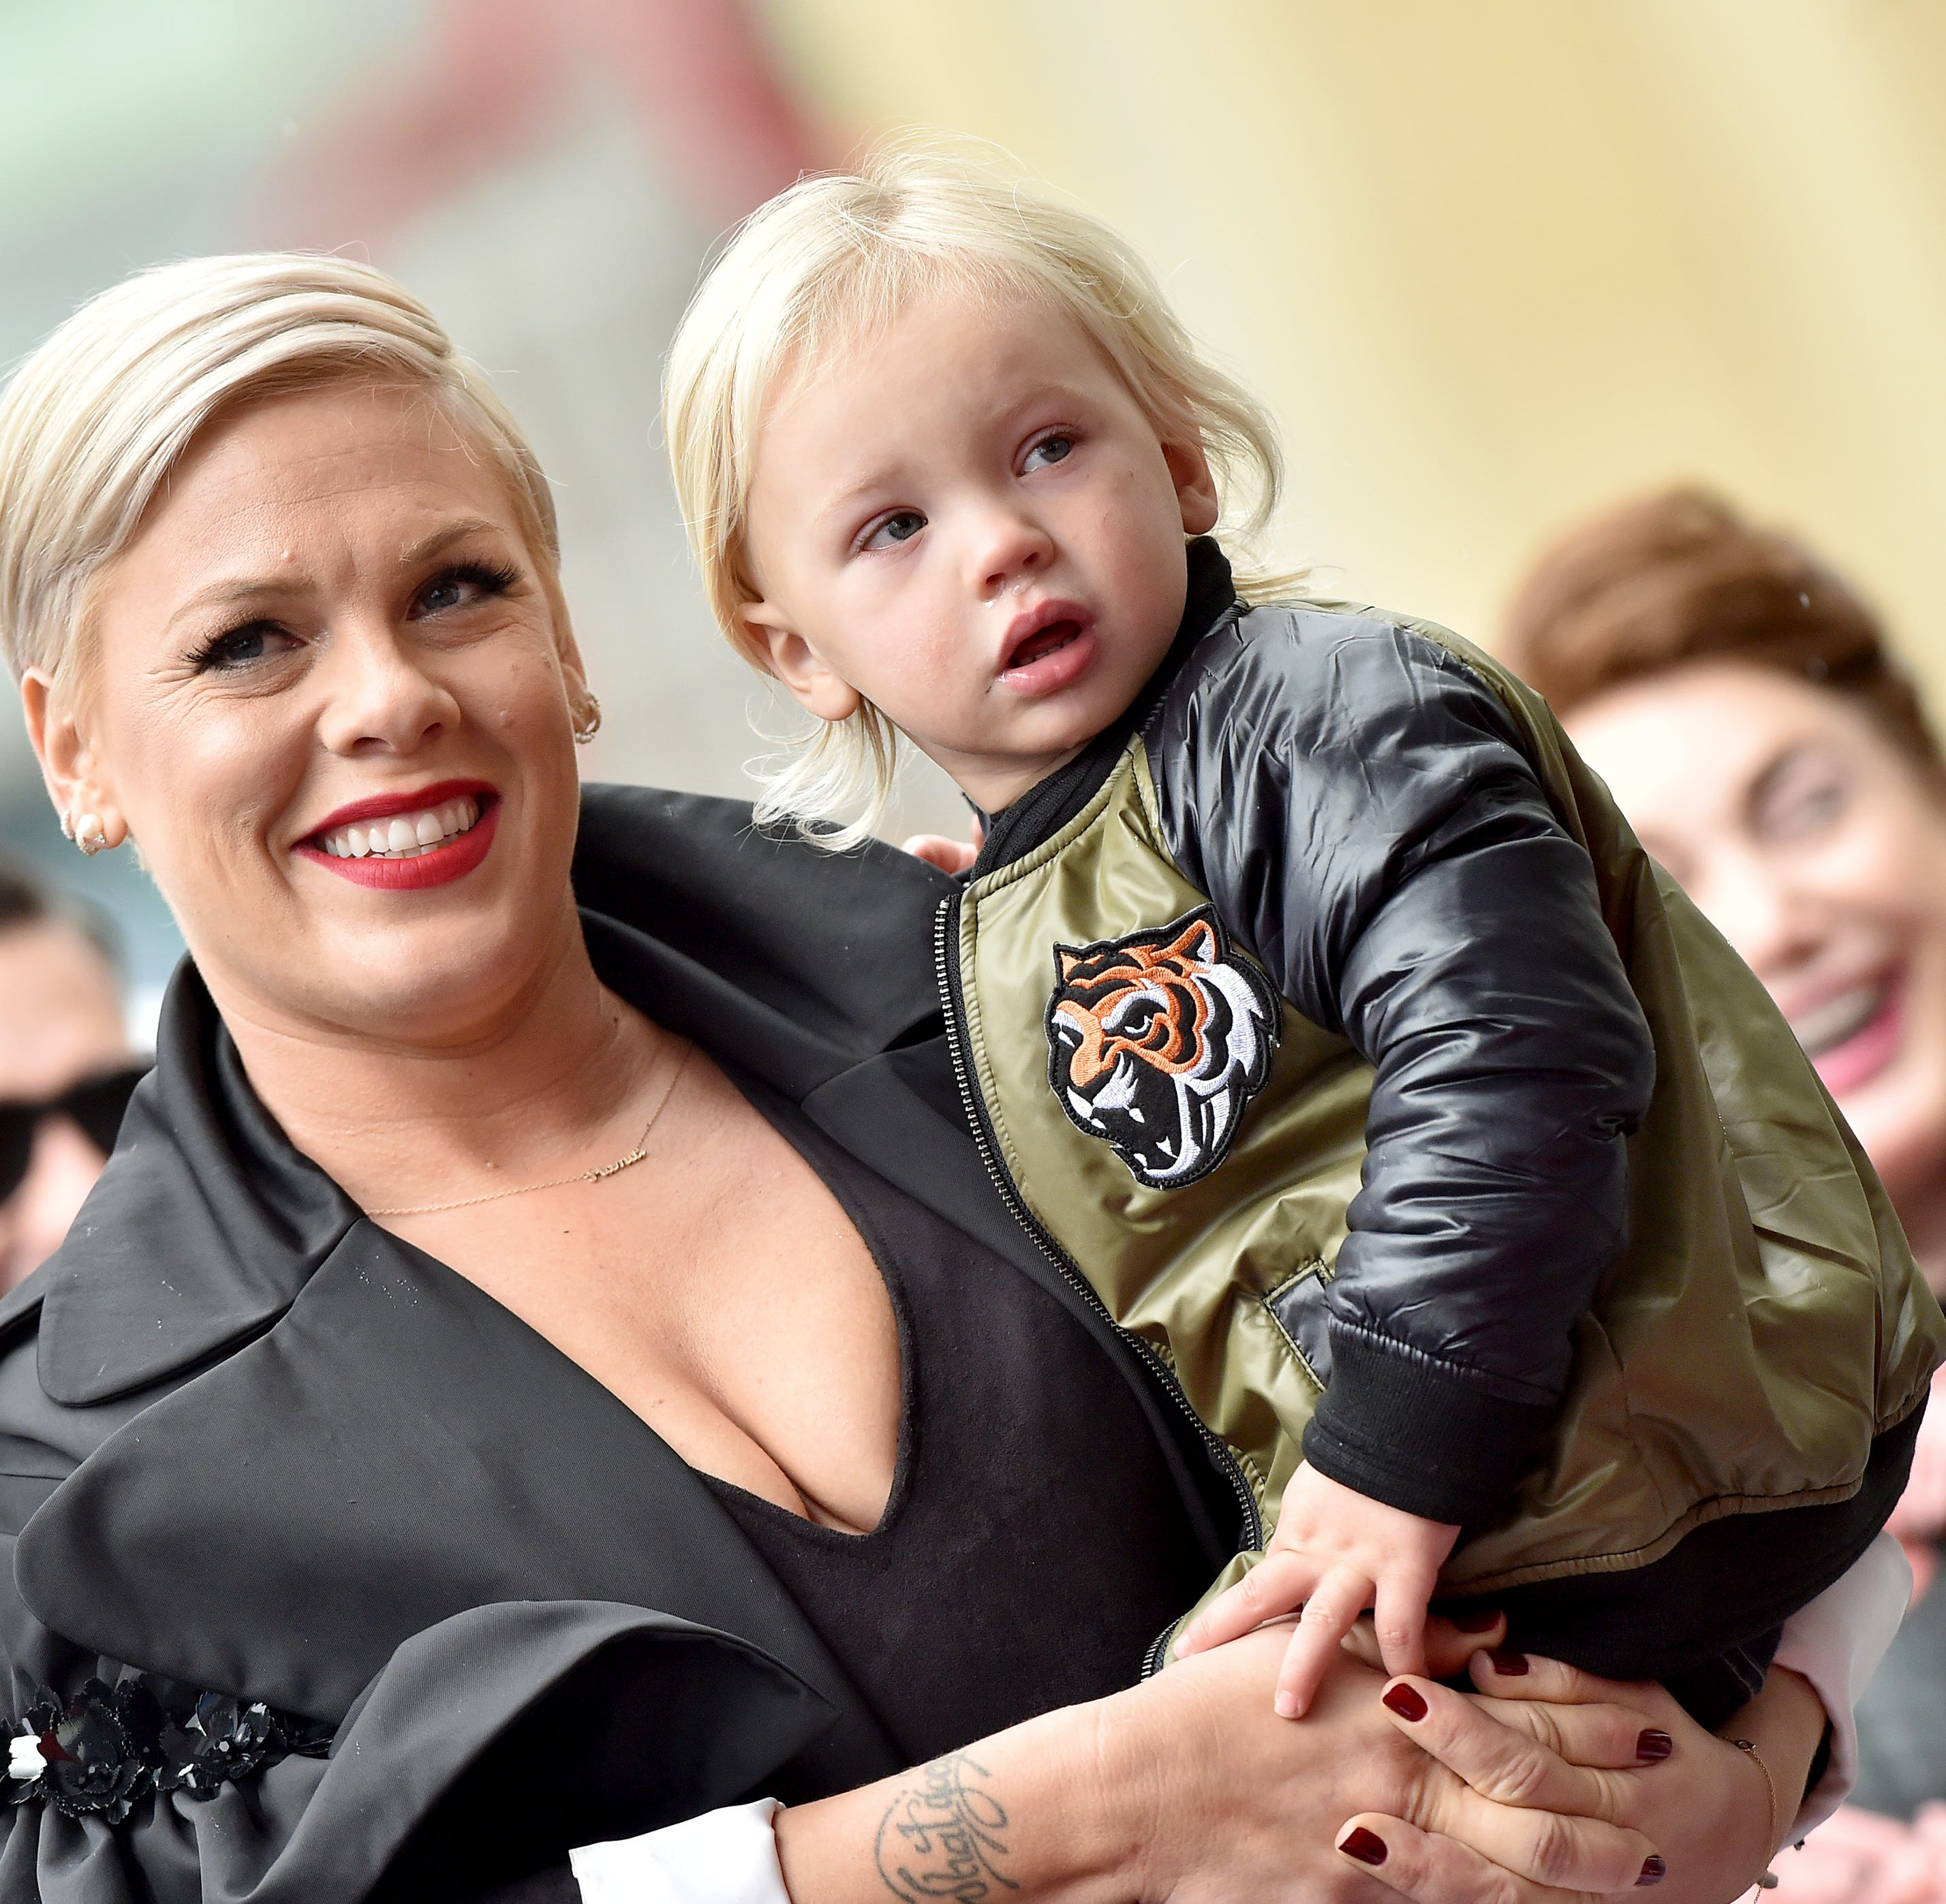 HOLLYWOOD, CALIFORNIA - FEBRUARY 05: Pink and son Jameson Moon Hart attend the ceremony honoring Pink with Star on the Hollywood Walk of Fame on February 05, 2019 in Hollywood, California. (Photo by Axelle/Bauer-Griffin/FilmMagic) ORG XMIT: 775287928 ORIG FILE ID: 1127639559